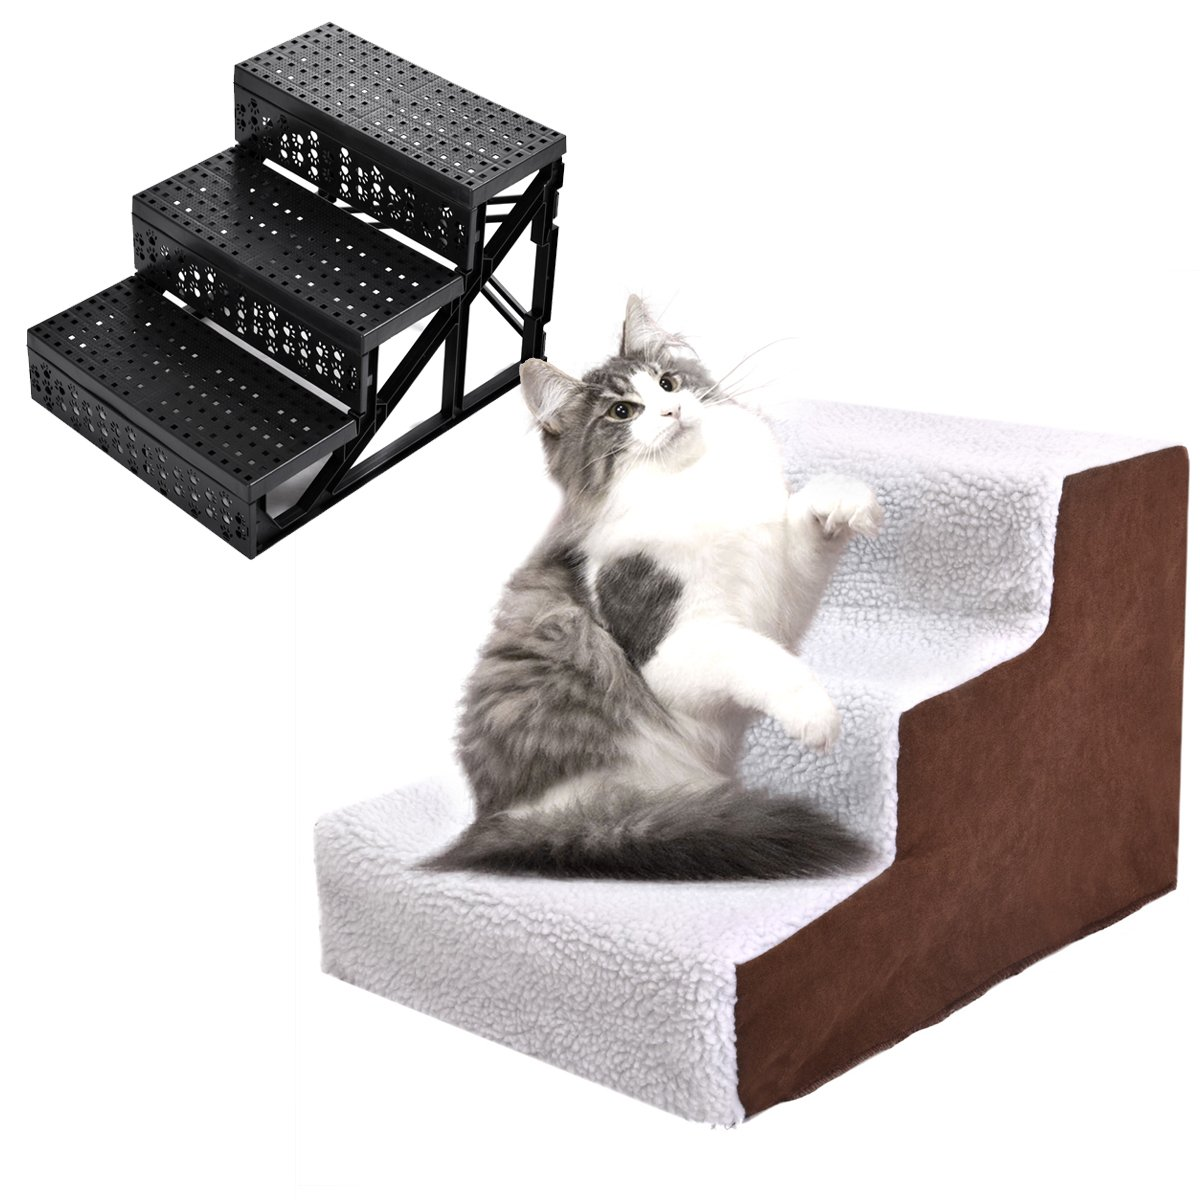 Tobbi Animals Pet Stairs, 3 Steps Ramp Ladder for Dogs, Portable, Ladder with Cover